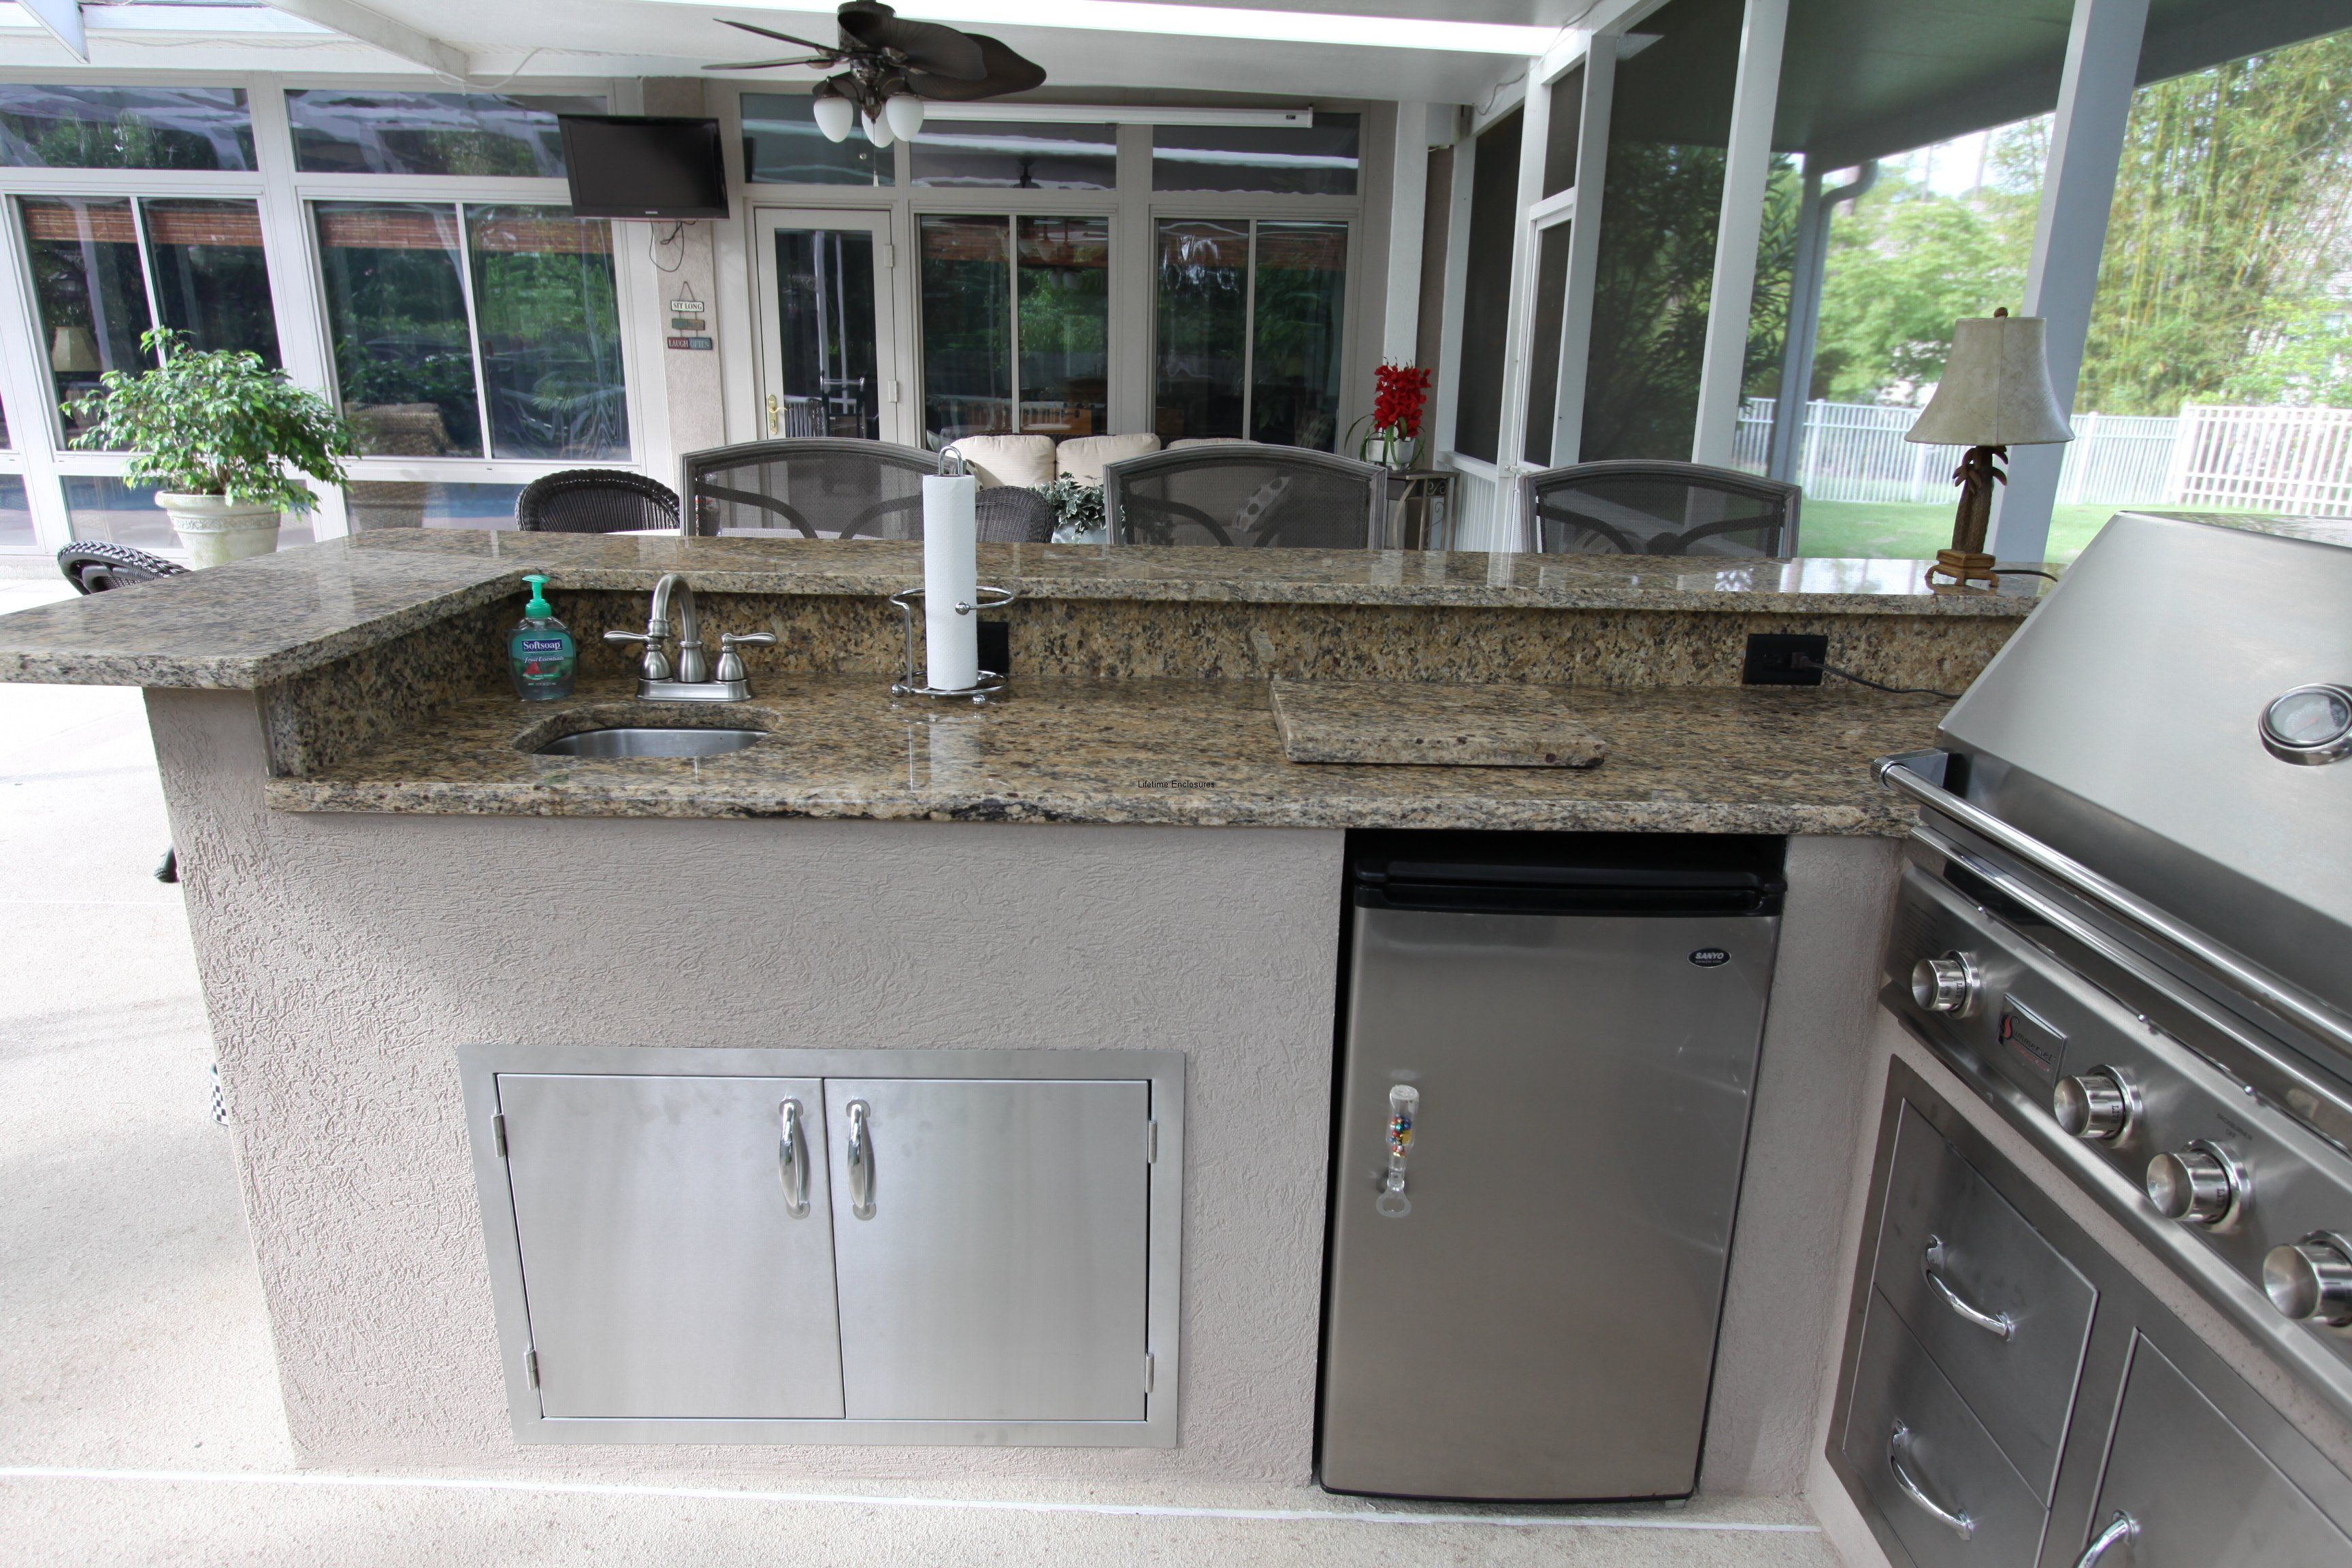 enclosed outdoor kitchens | Outdoor Kitchens Portfolio of Our ...